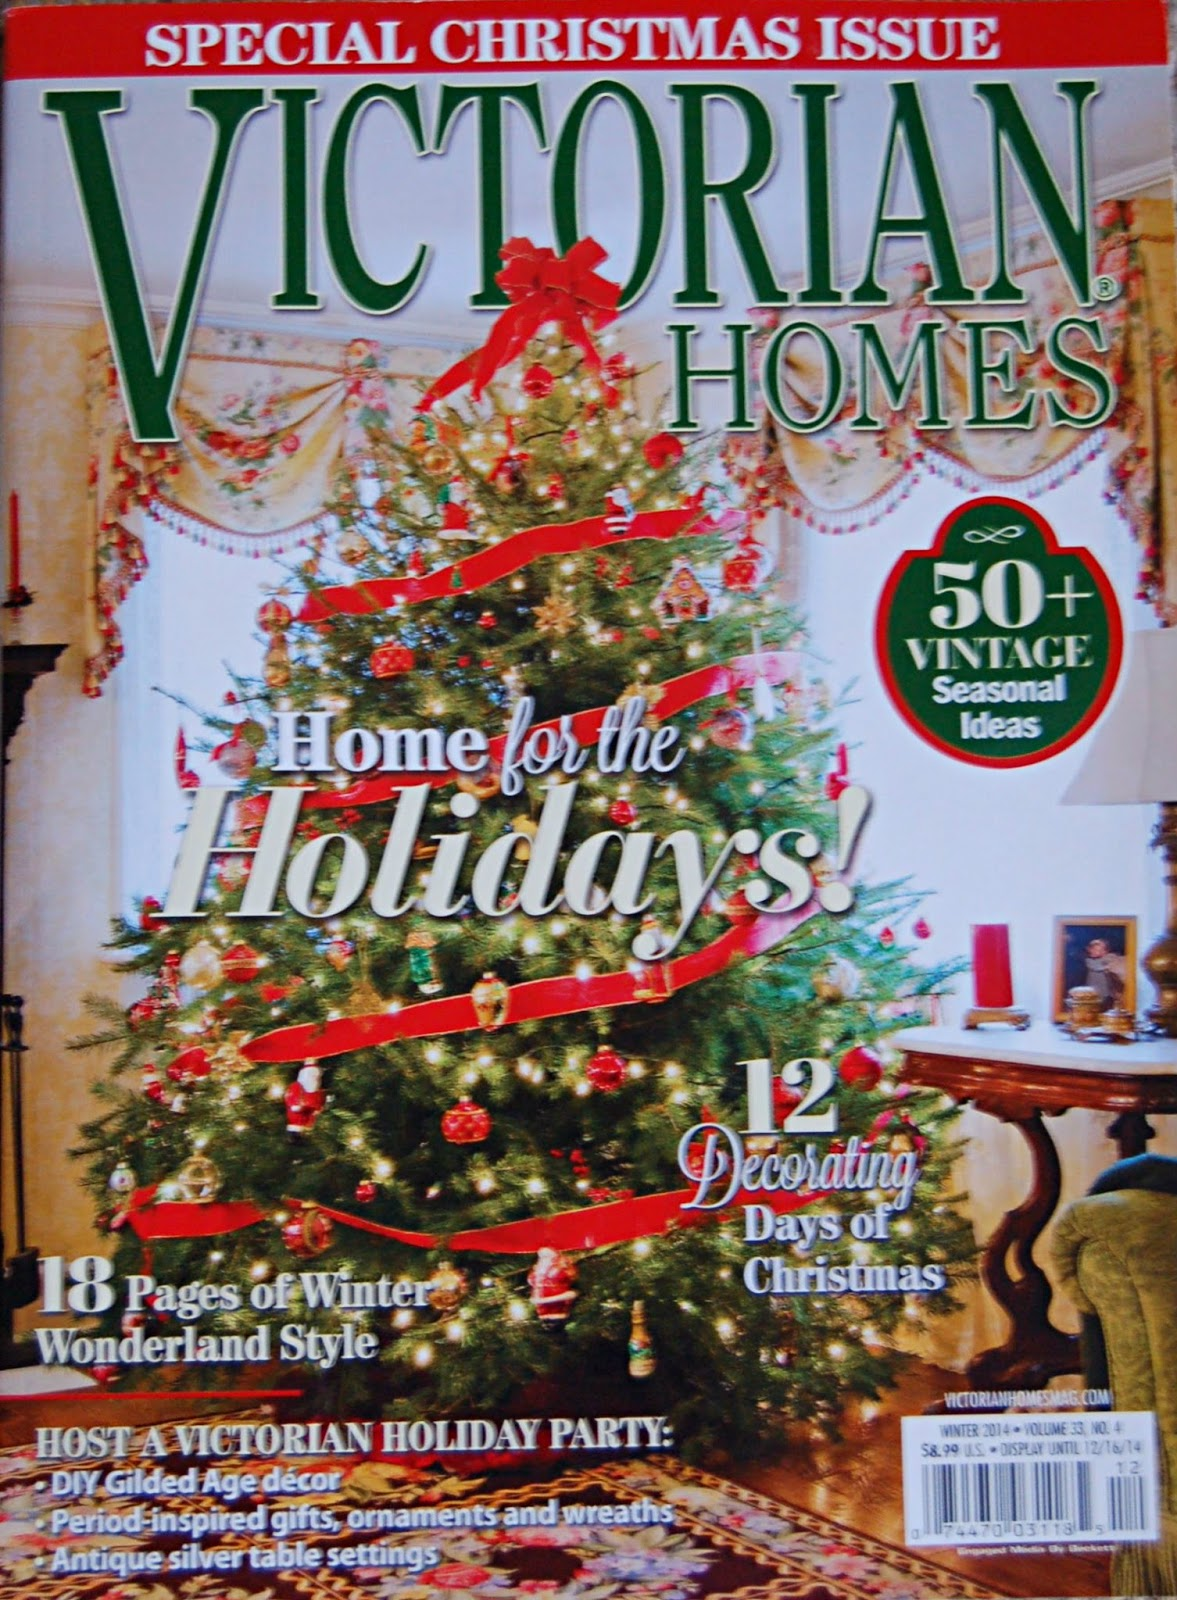 http://www.myhydrangeahome.com/article_6/Victorian-Homes-2014-Special-Christmas-Issue.htm